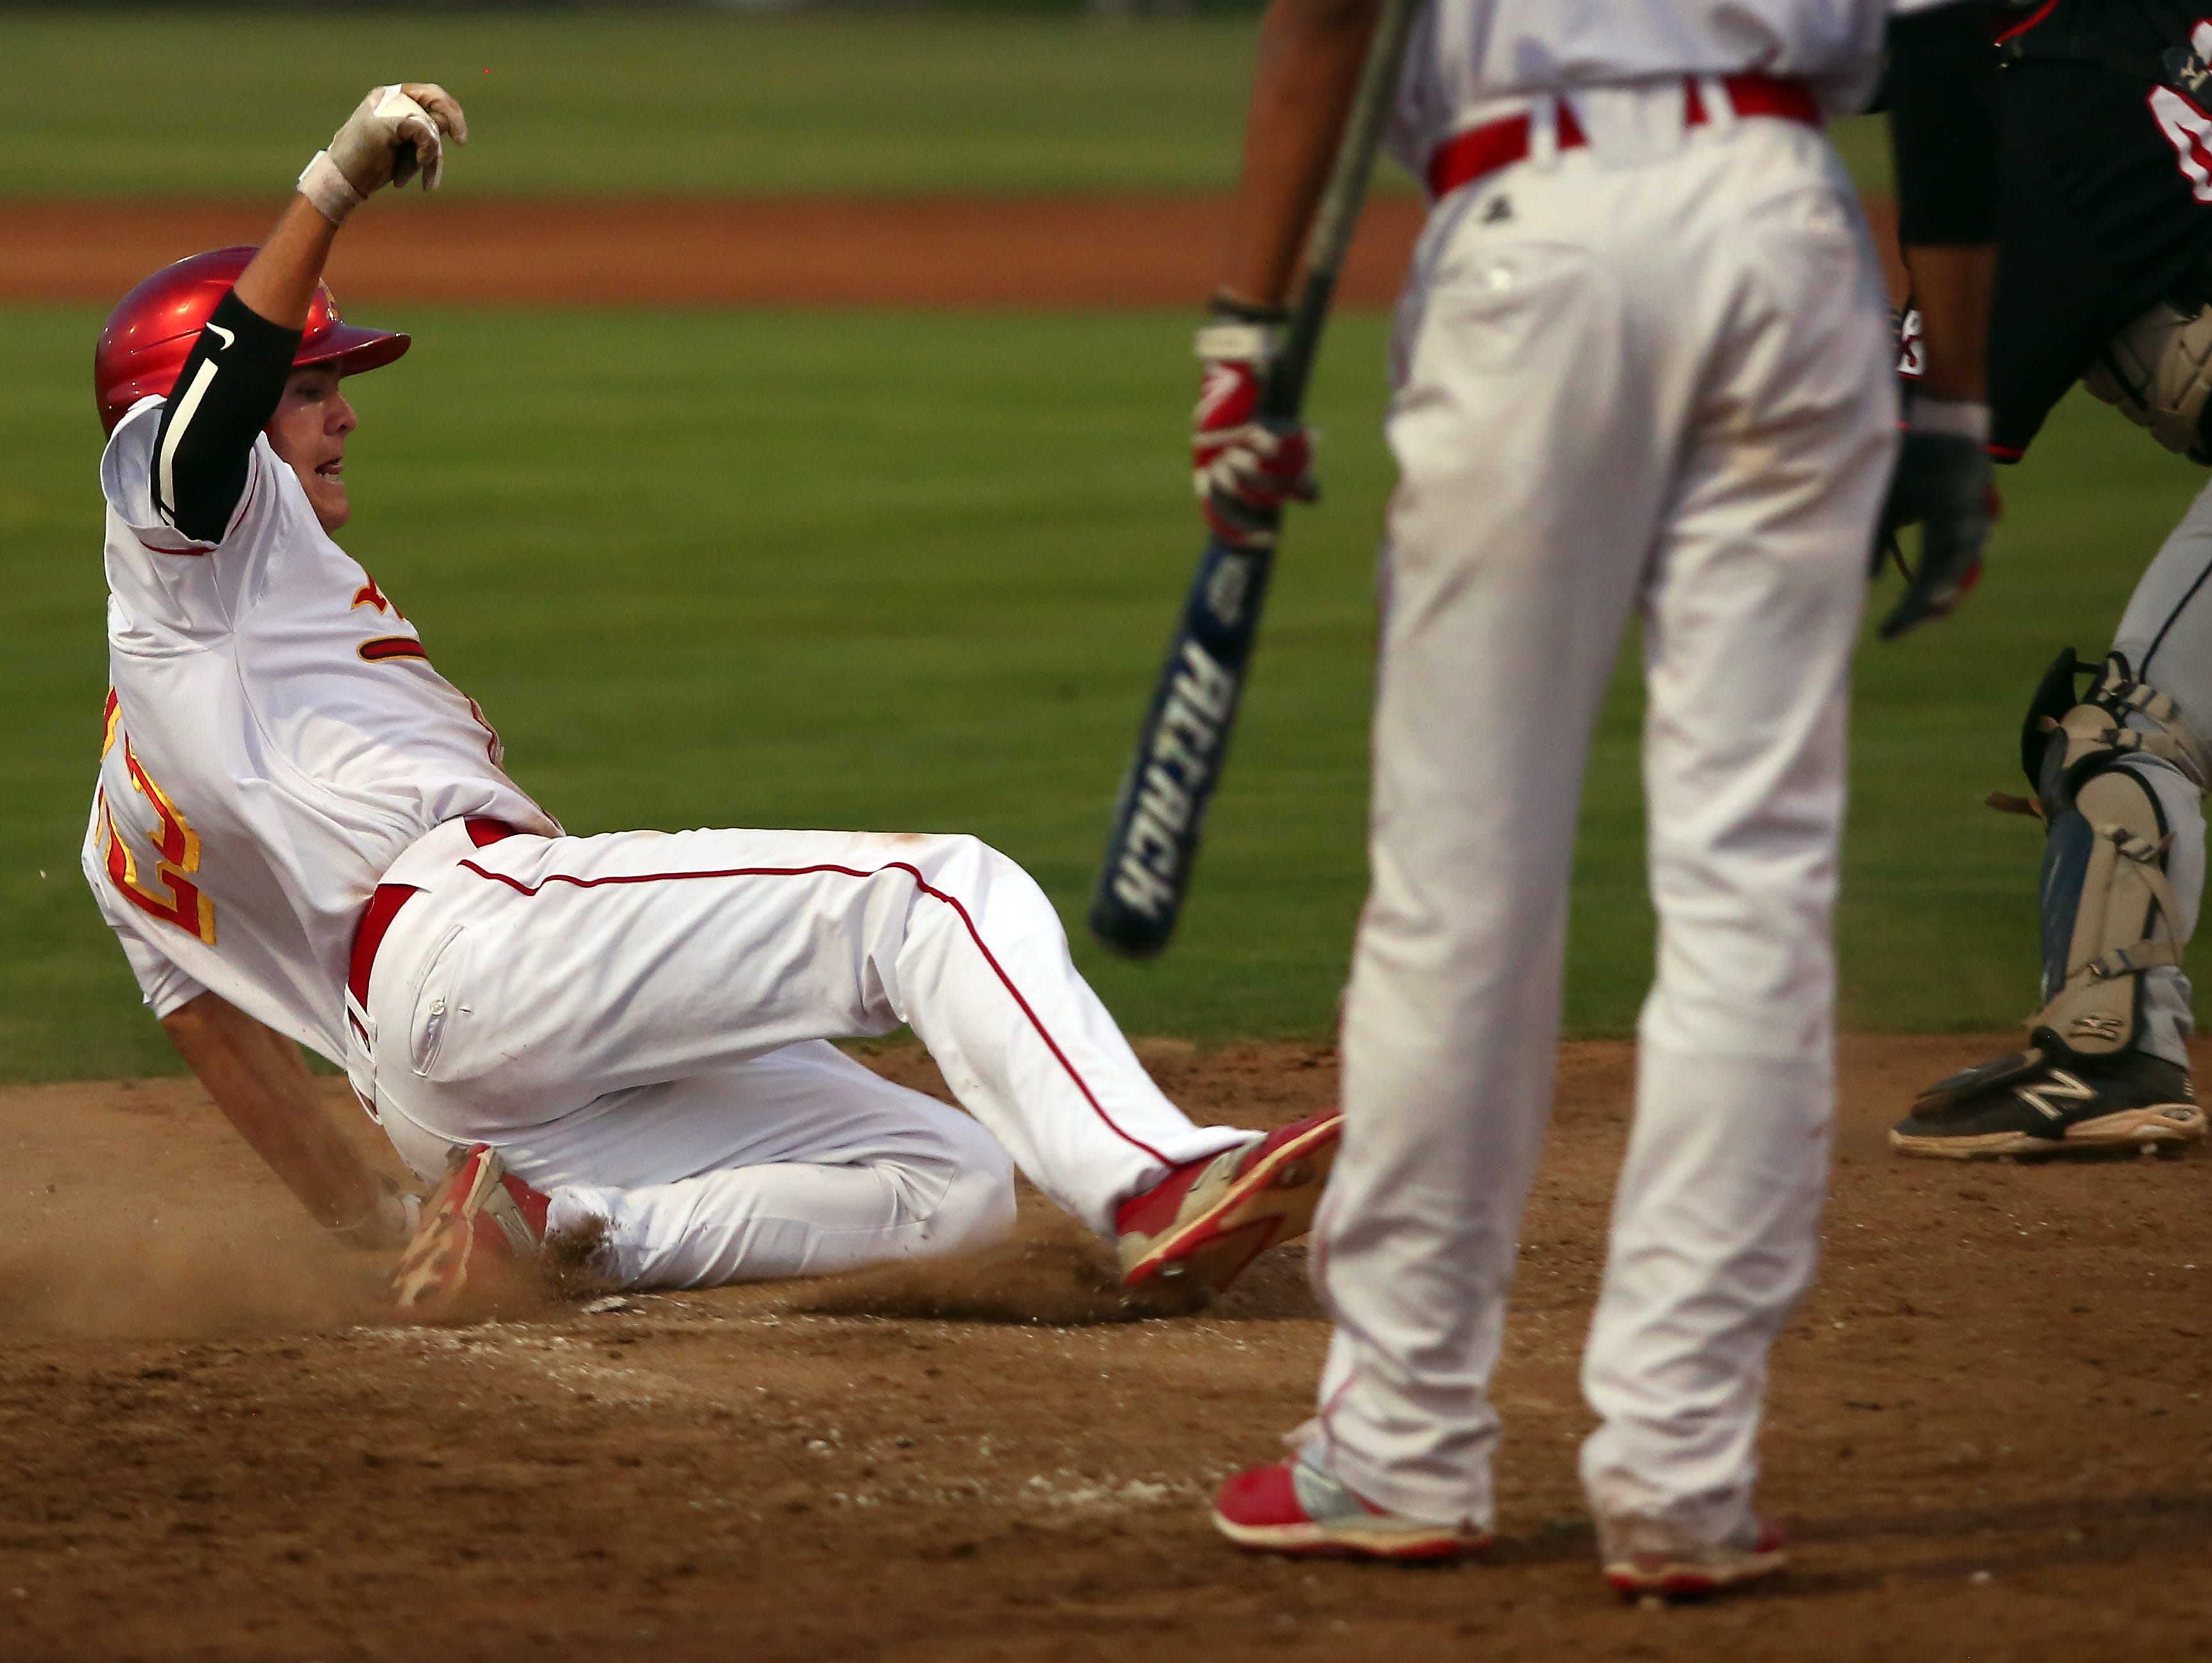 Palm Desert's Beau Berryhill (23) slides across home plate to score as the Aztecs host the Palm Springs Indians at home Tuesday, April 5, 2016.